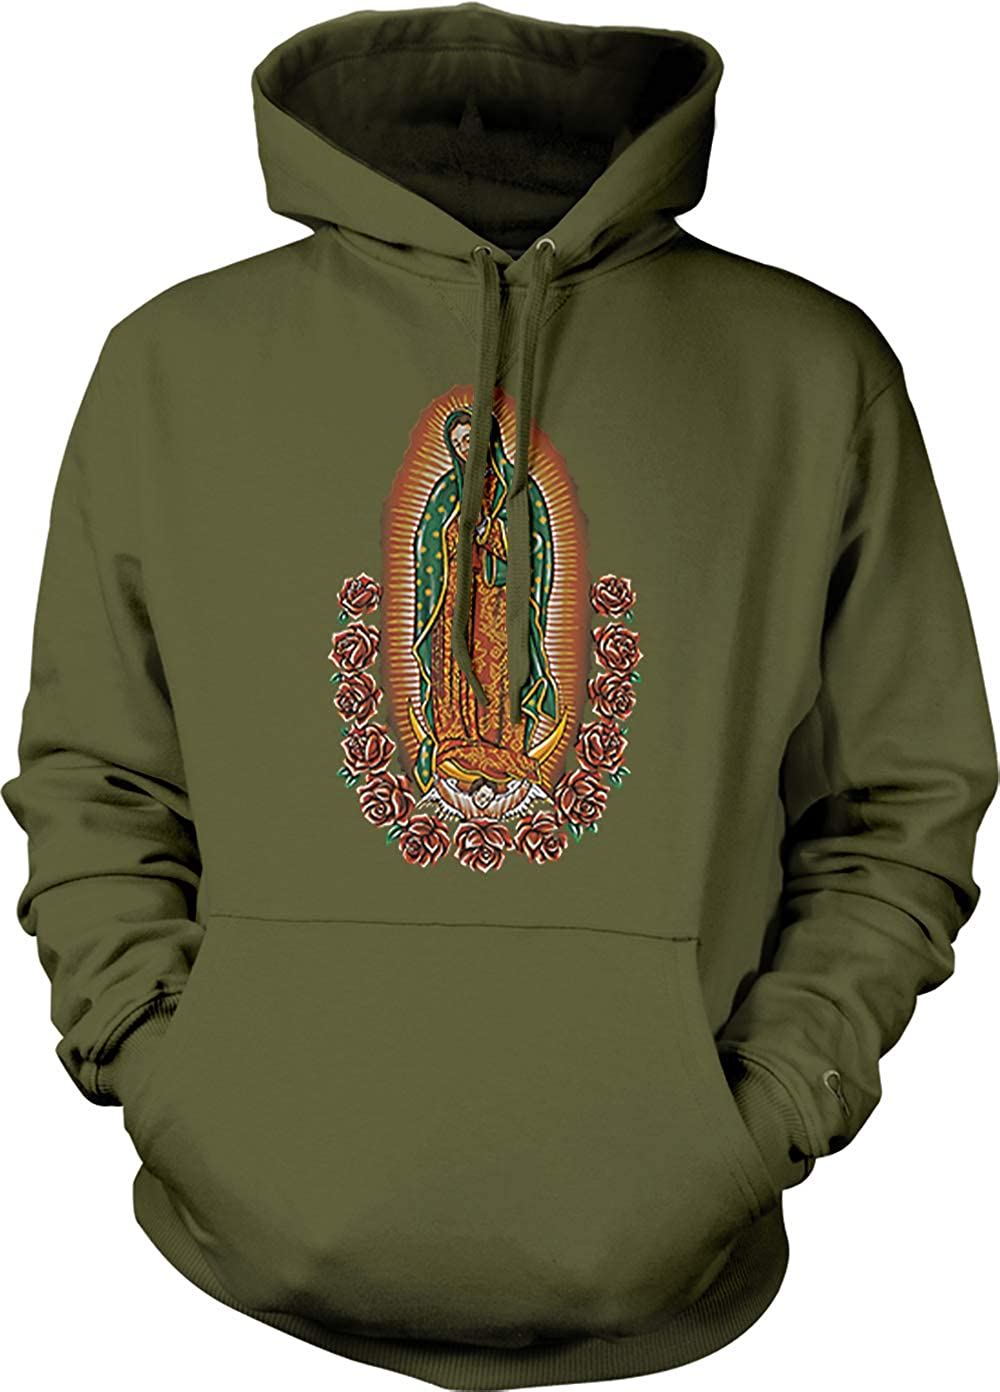 Our Lady Of Guadalupe - Virgin Chicago Mall Sweatshirt Unisex Bombing new work Hoodie Mary